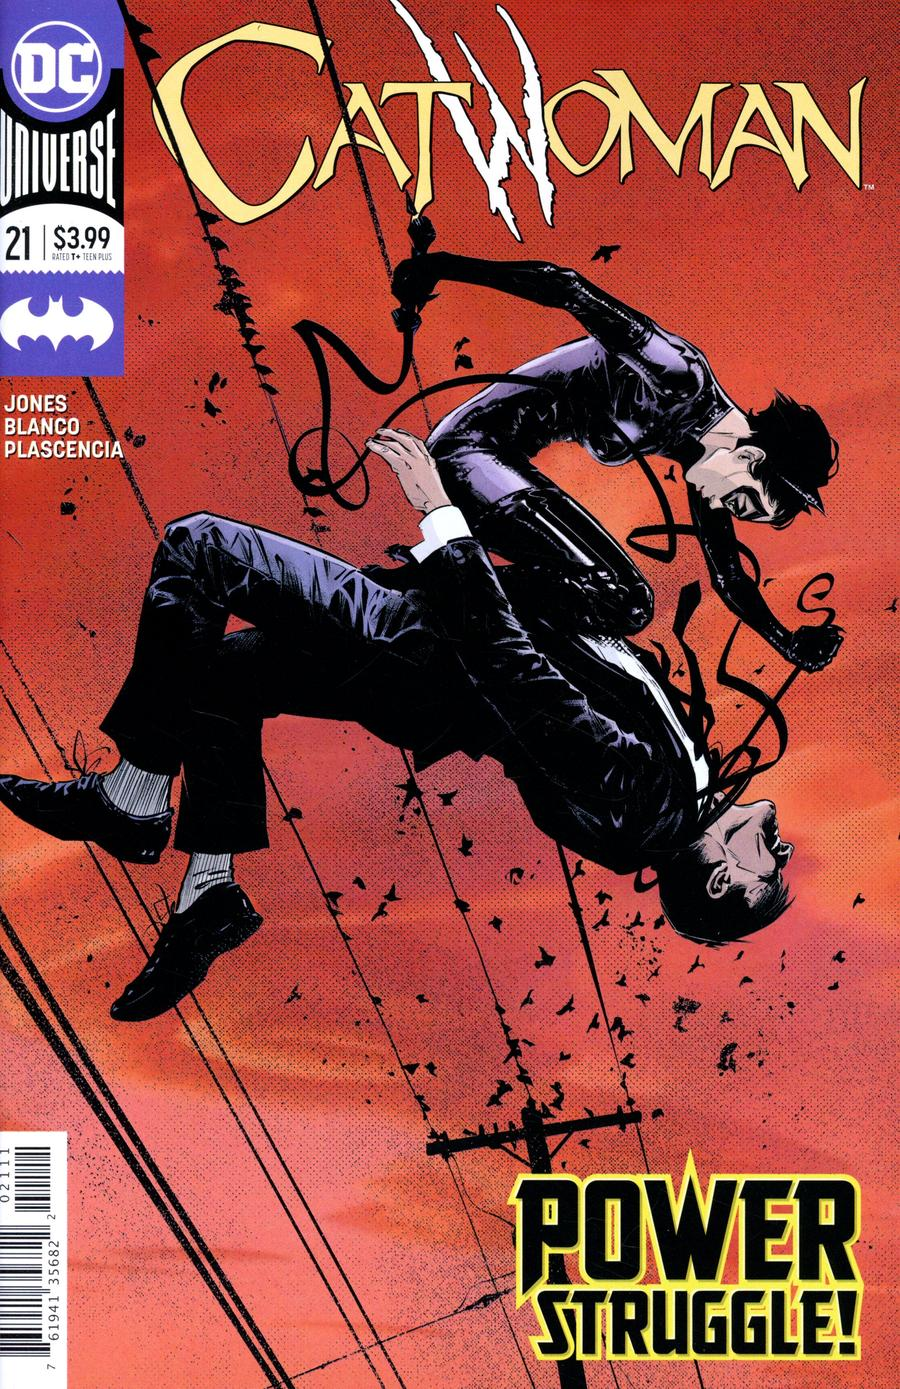 Catwoman #21 (2020)